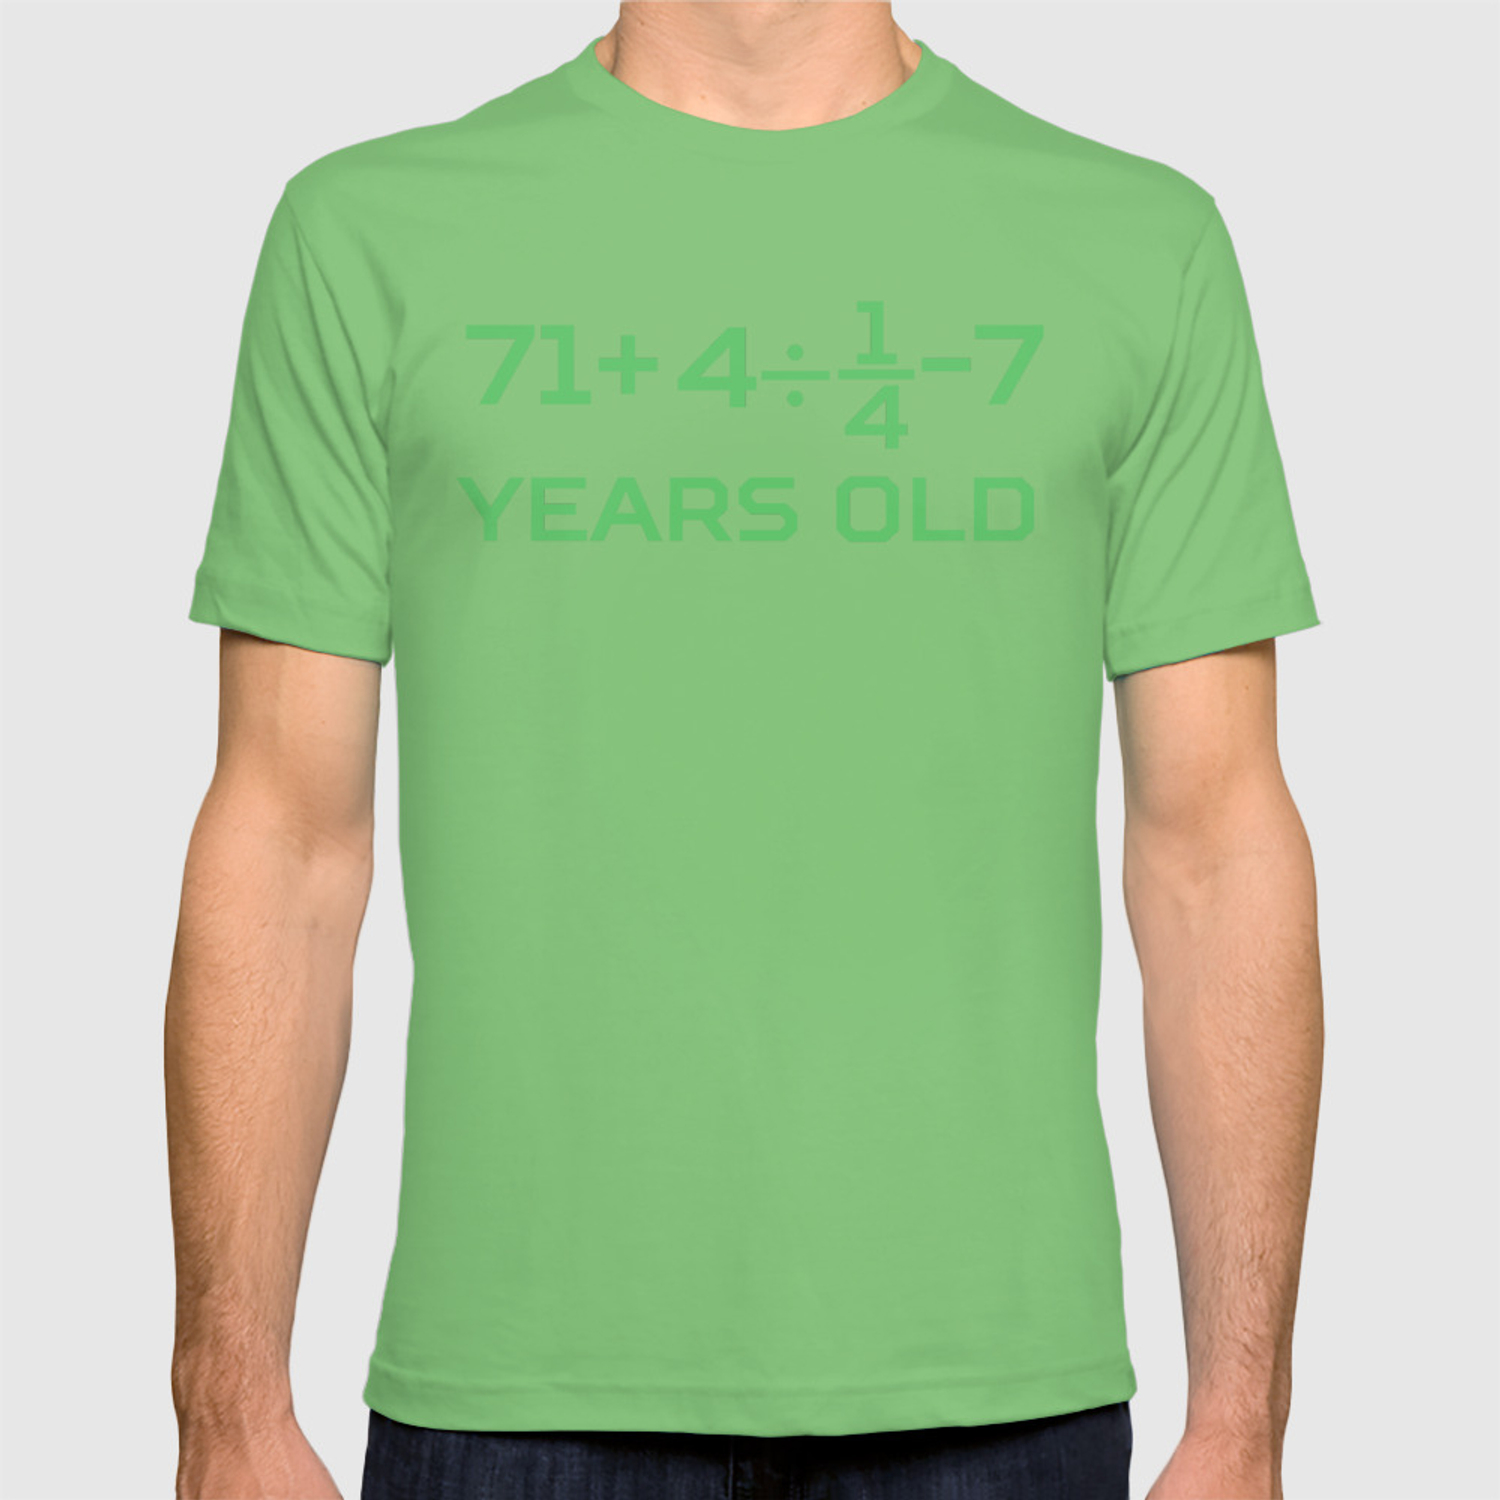 15fabaf34 80 Years Old Math Equation Funny 80th Birthday T-shirt by awesomeart |  Society6